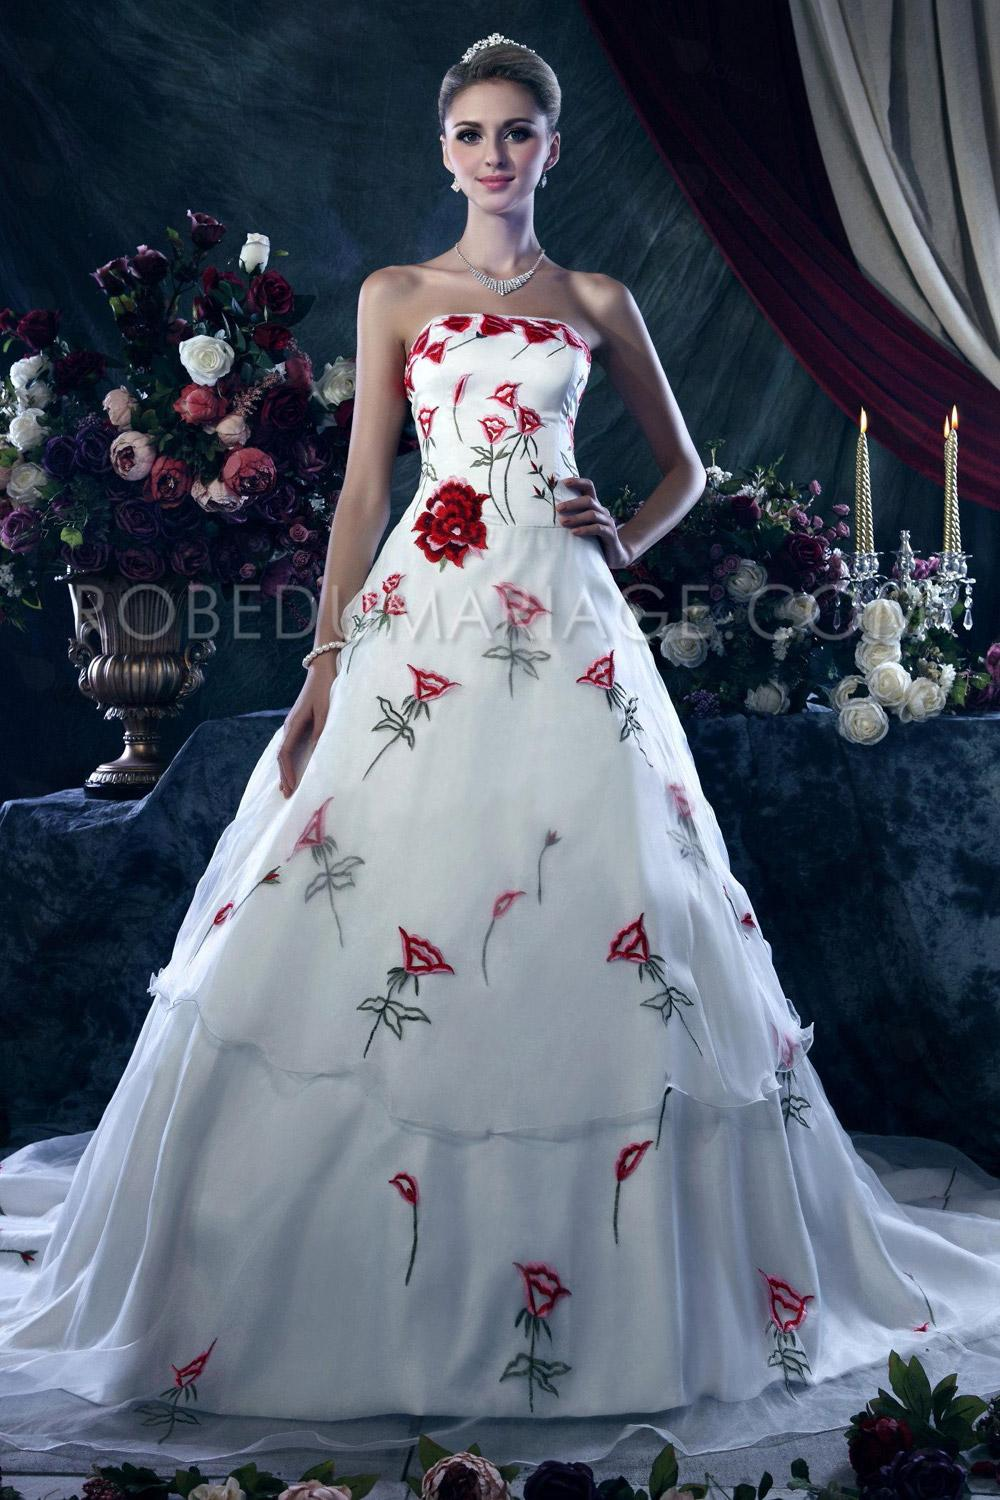 Robe mariage couleur or